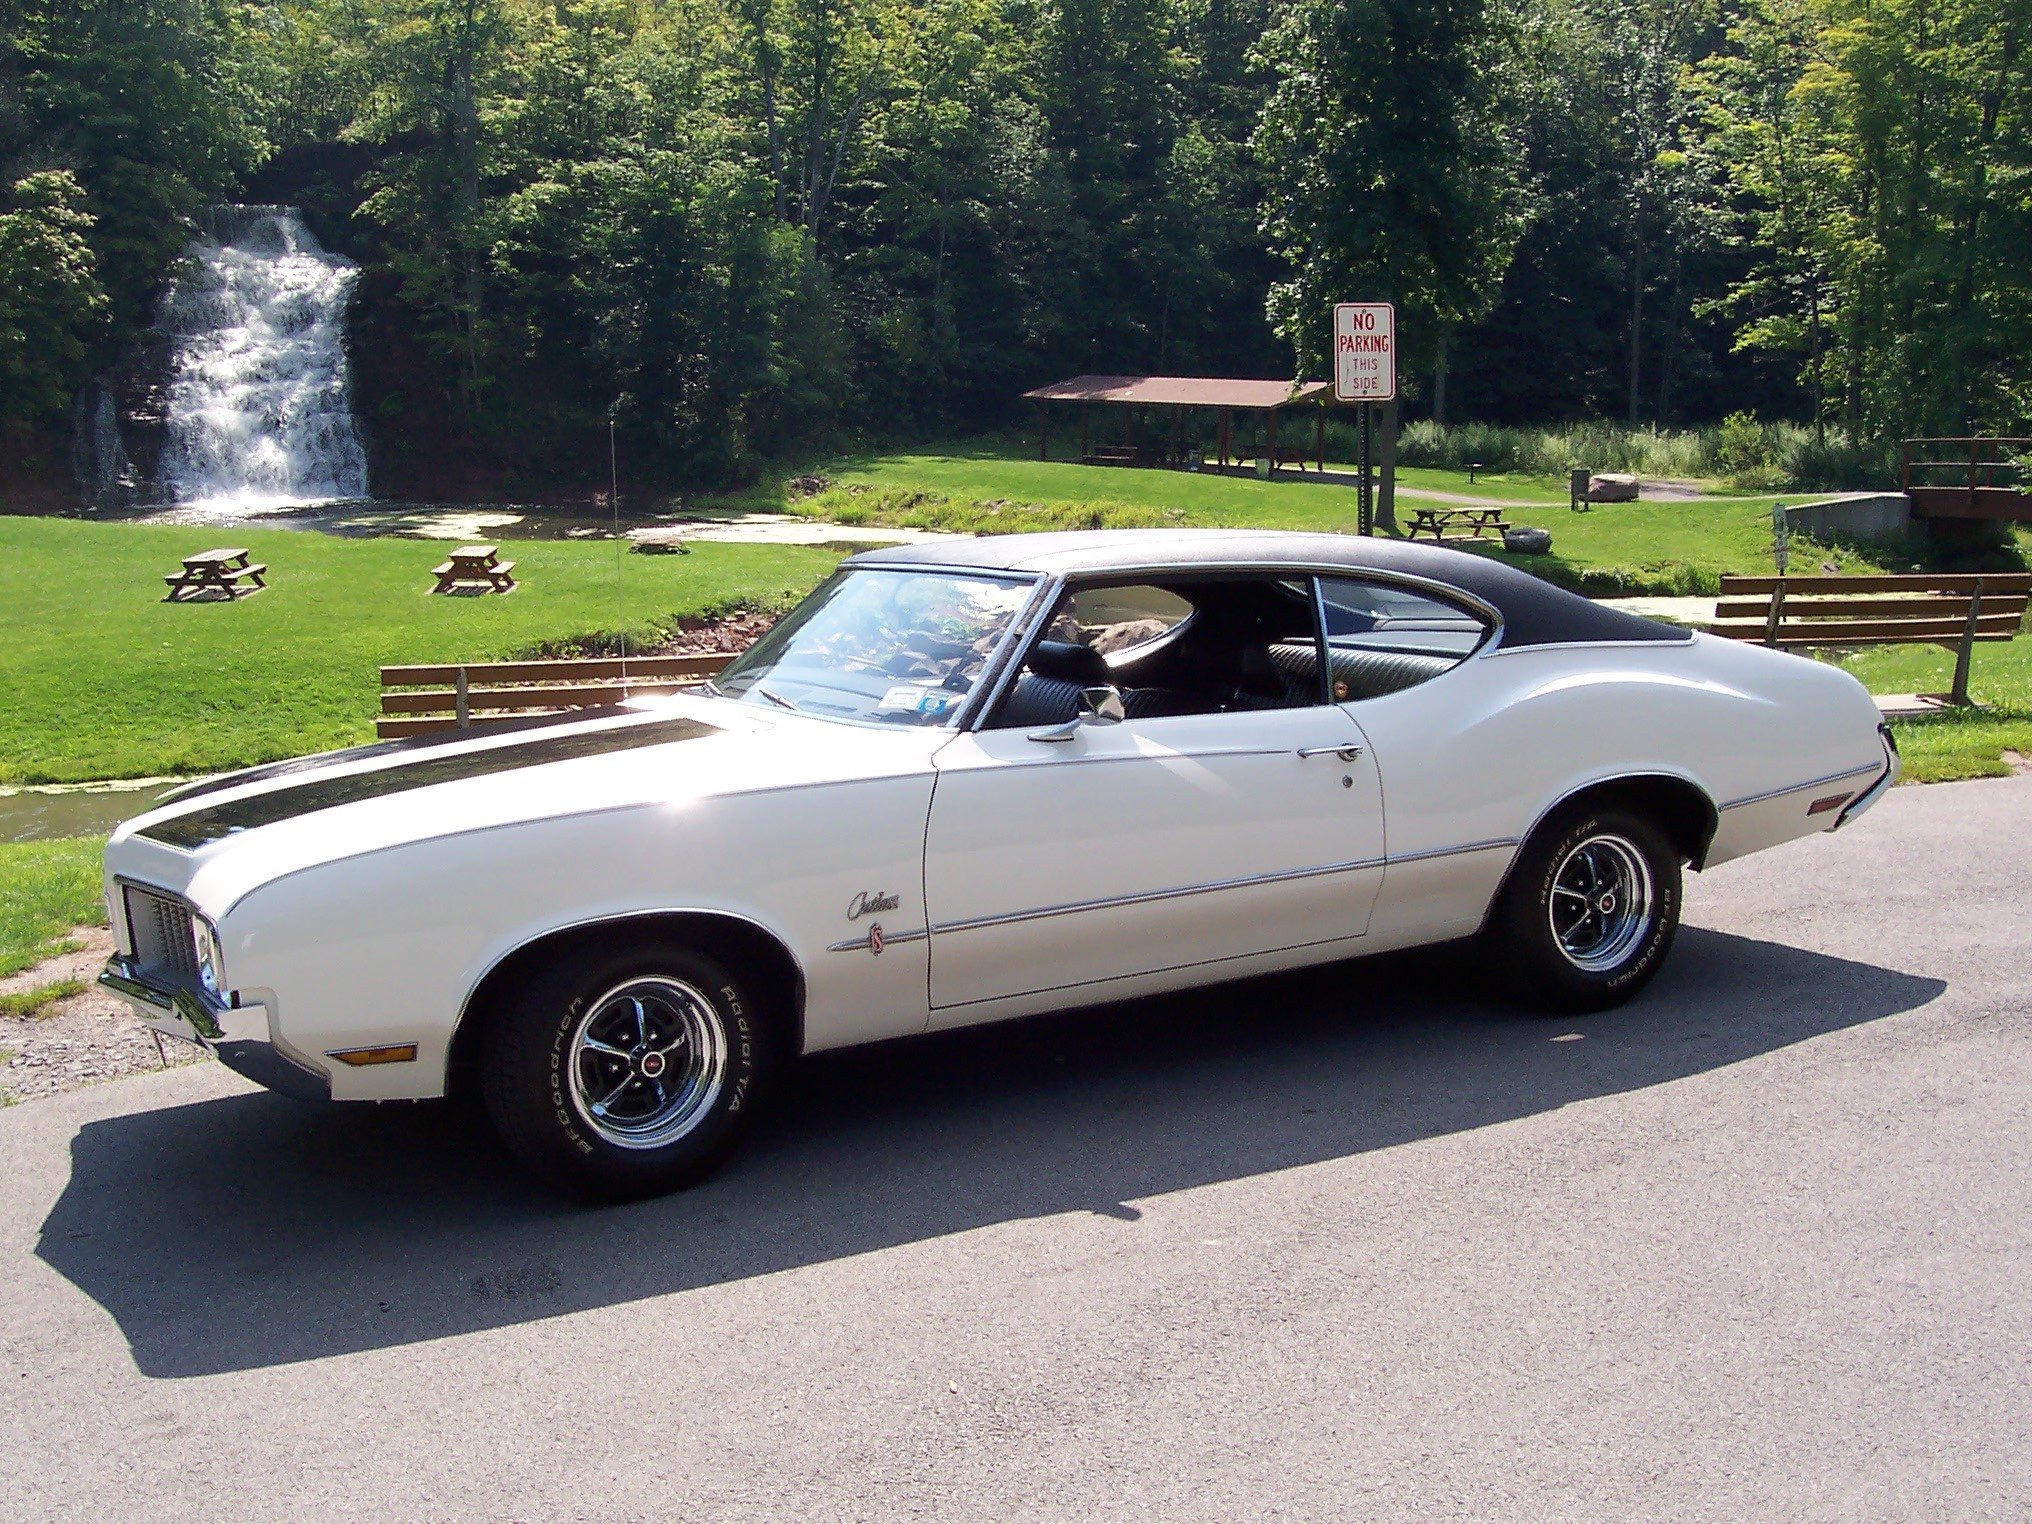 karld 1970 Oldsmobile Cutlass Specs Photos Modification Info at